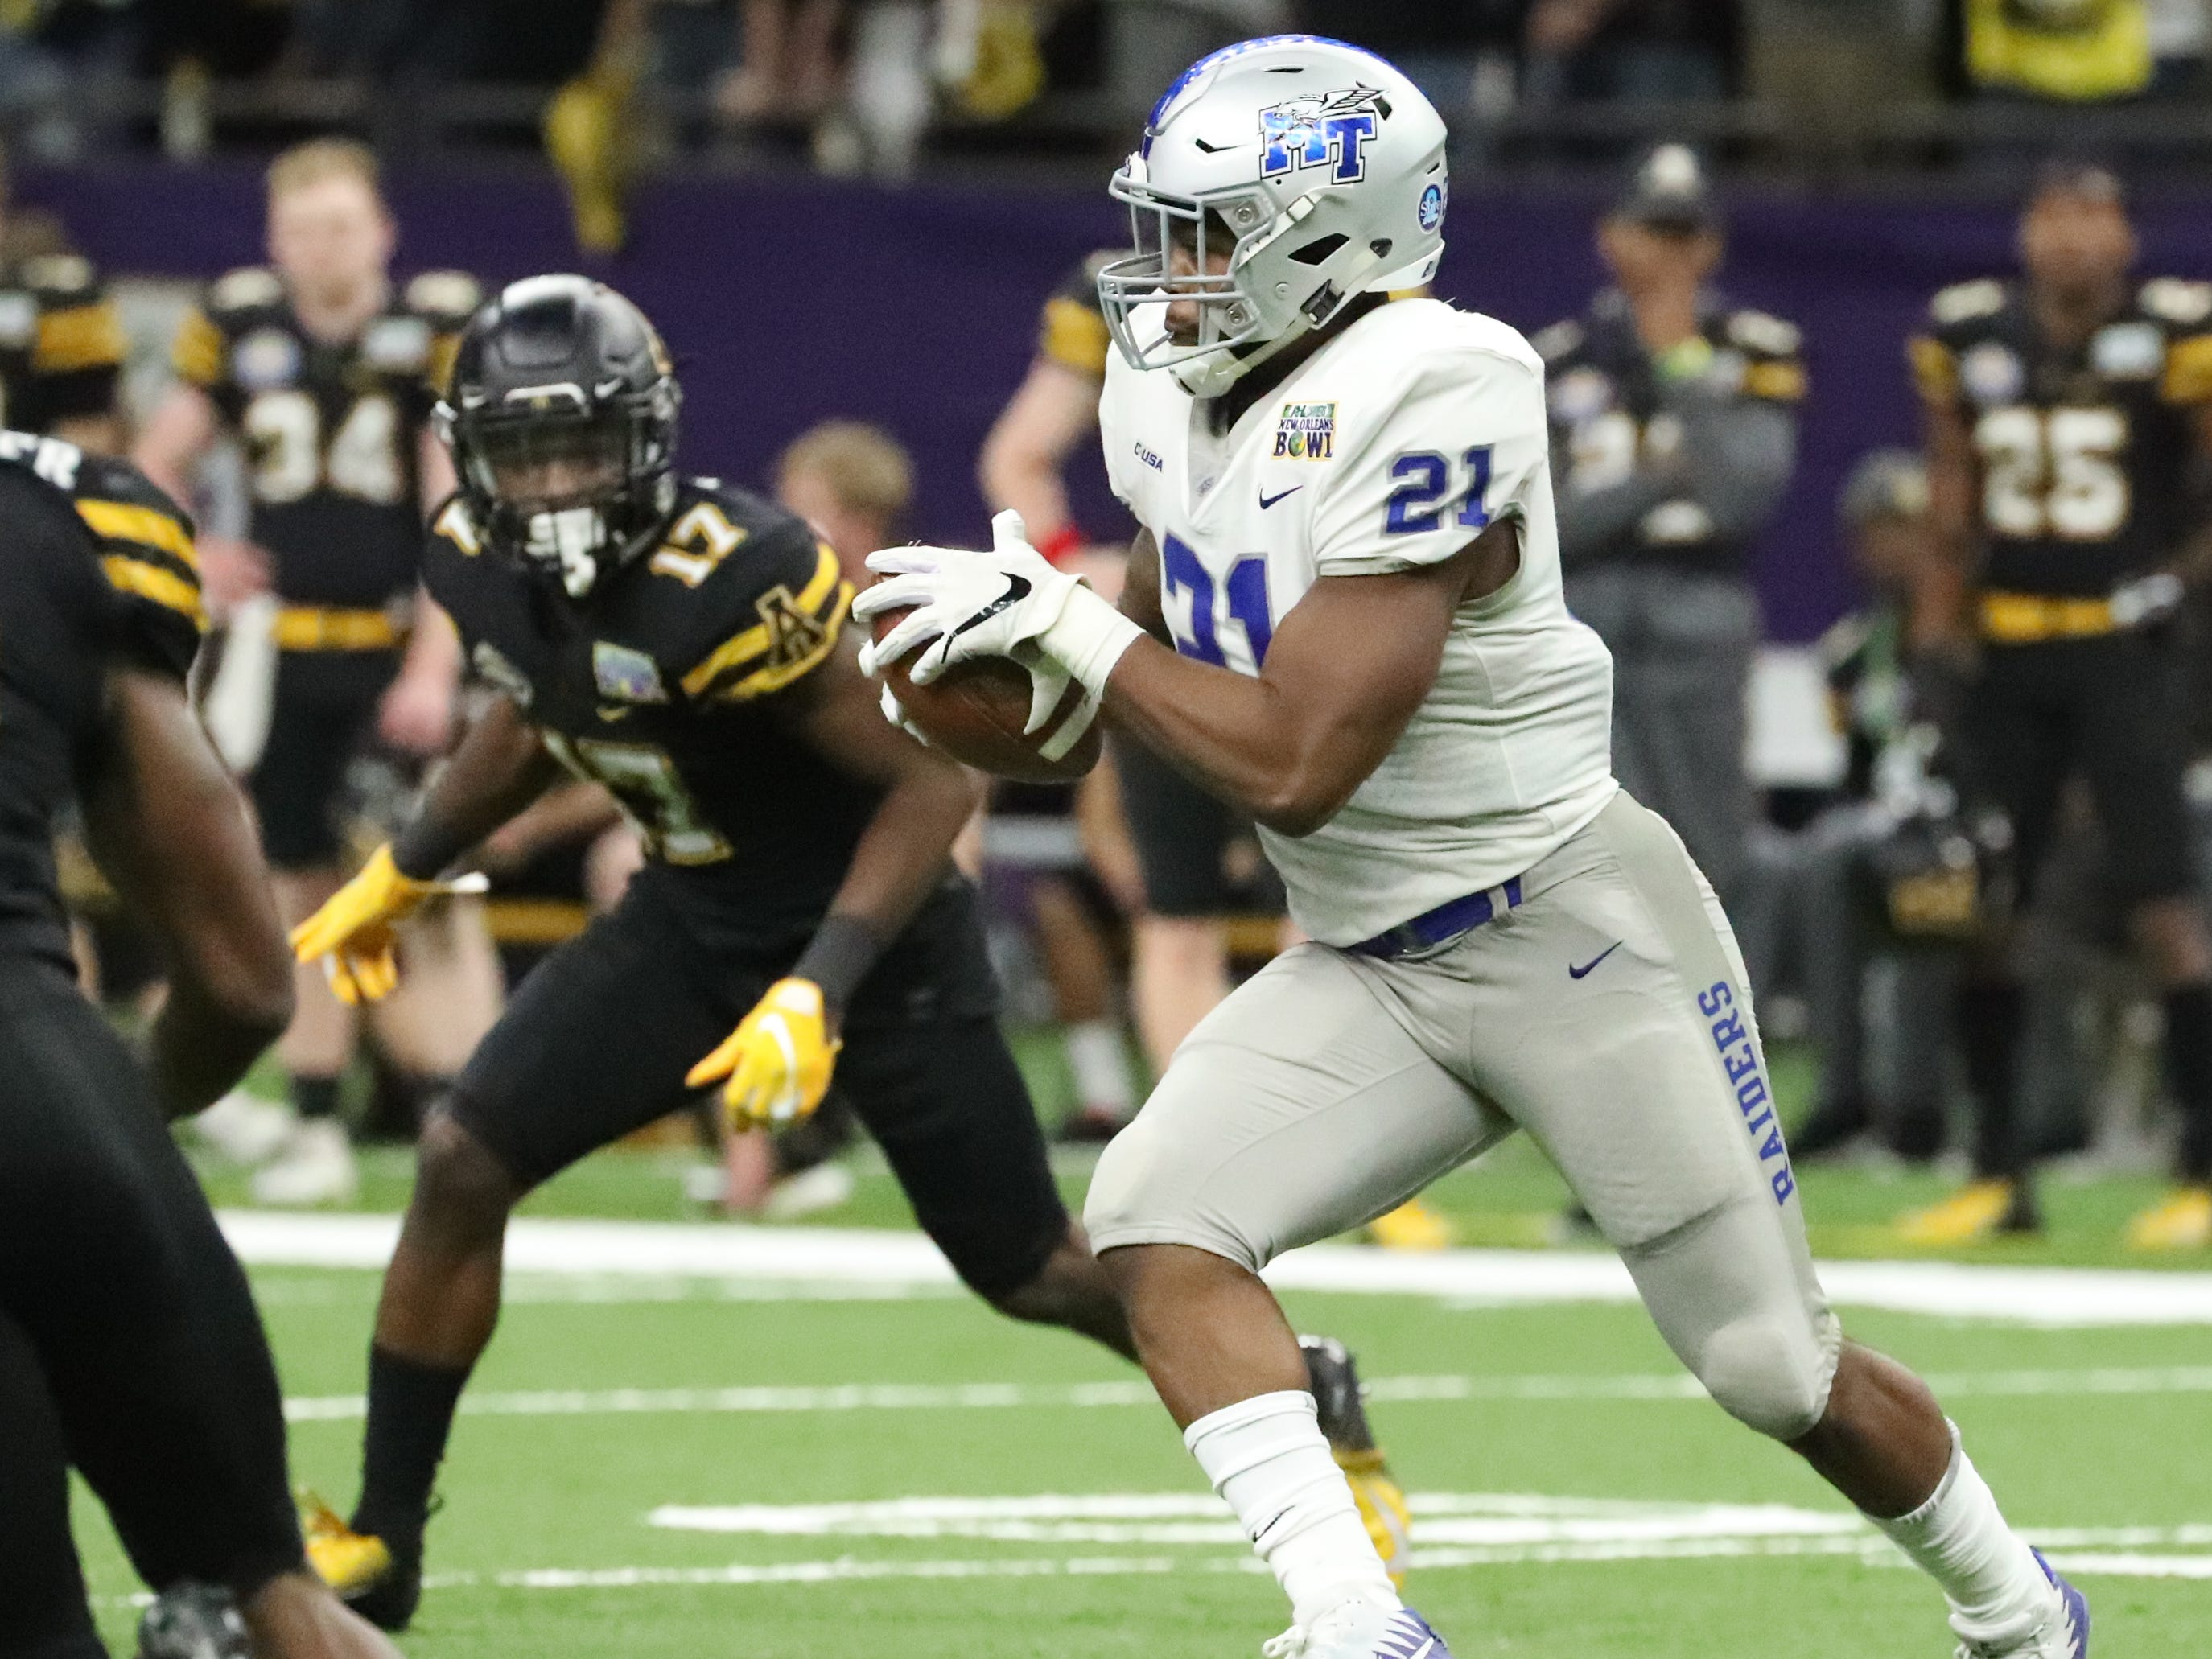 Middle Tennessee Blue Raiders running back Tavares Thomas (21) runs the ball against Appalachian State on Saturday, Dec. 15, 2018 during the New Orleans Bowl.